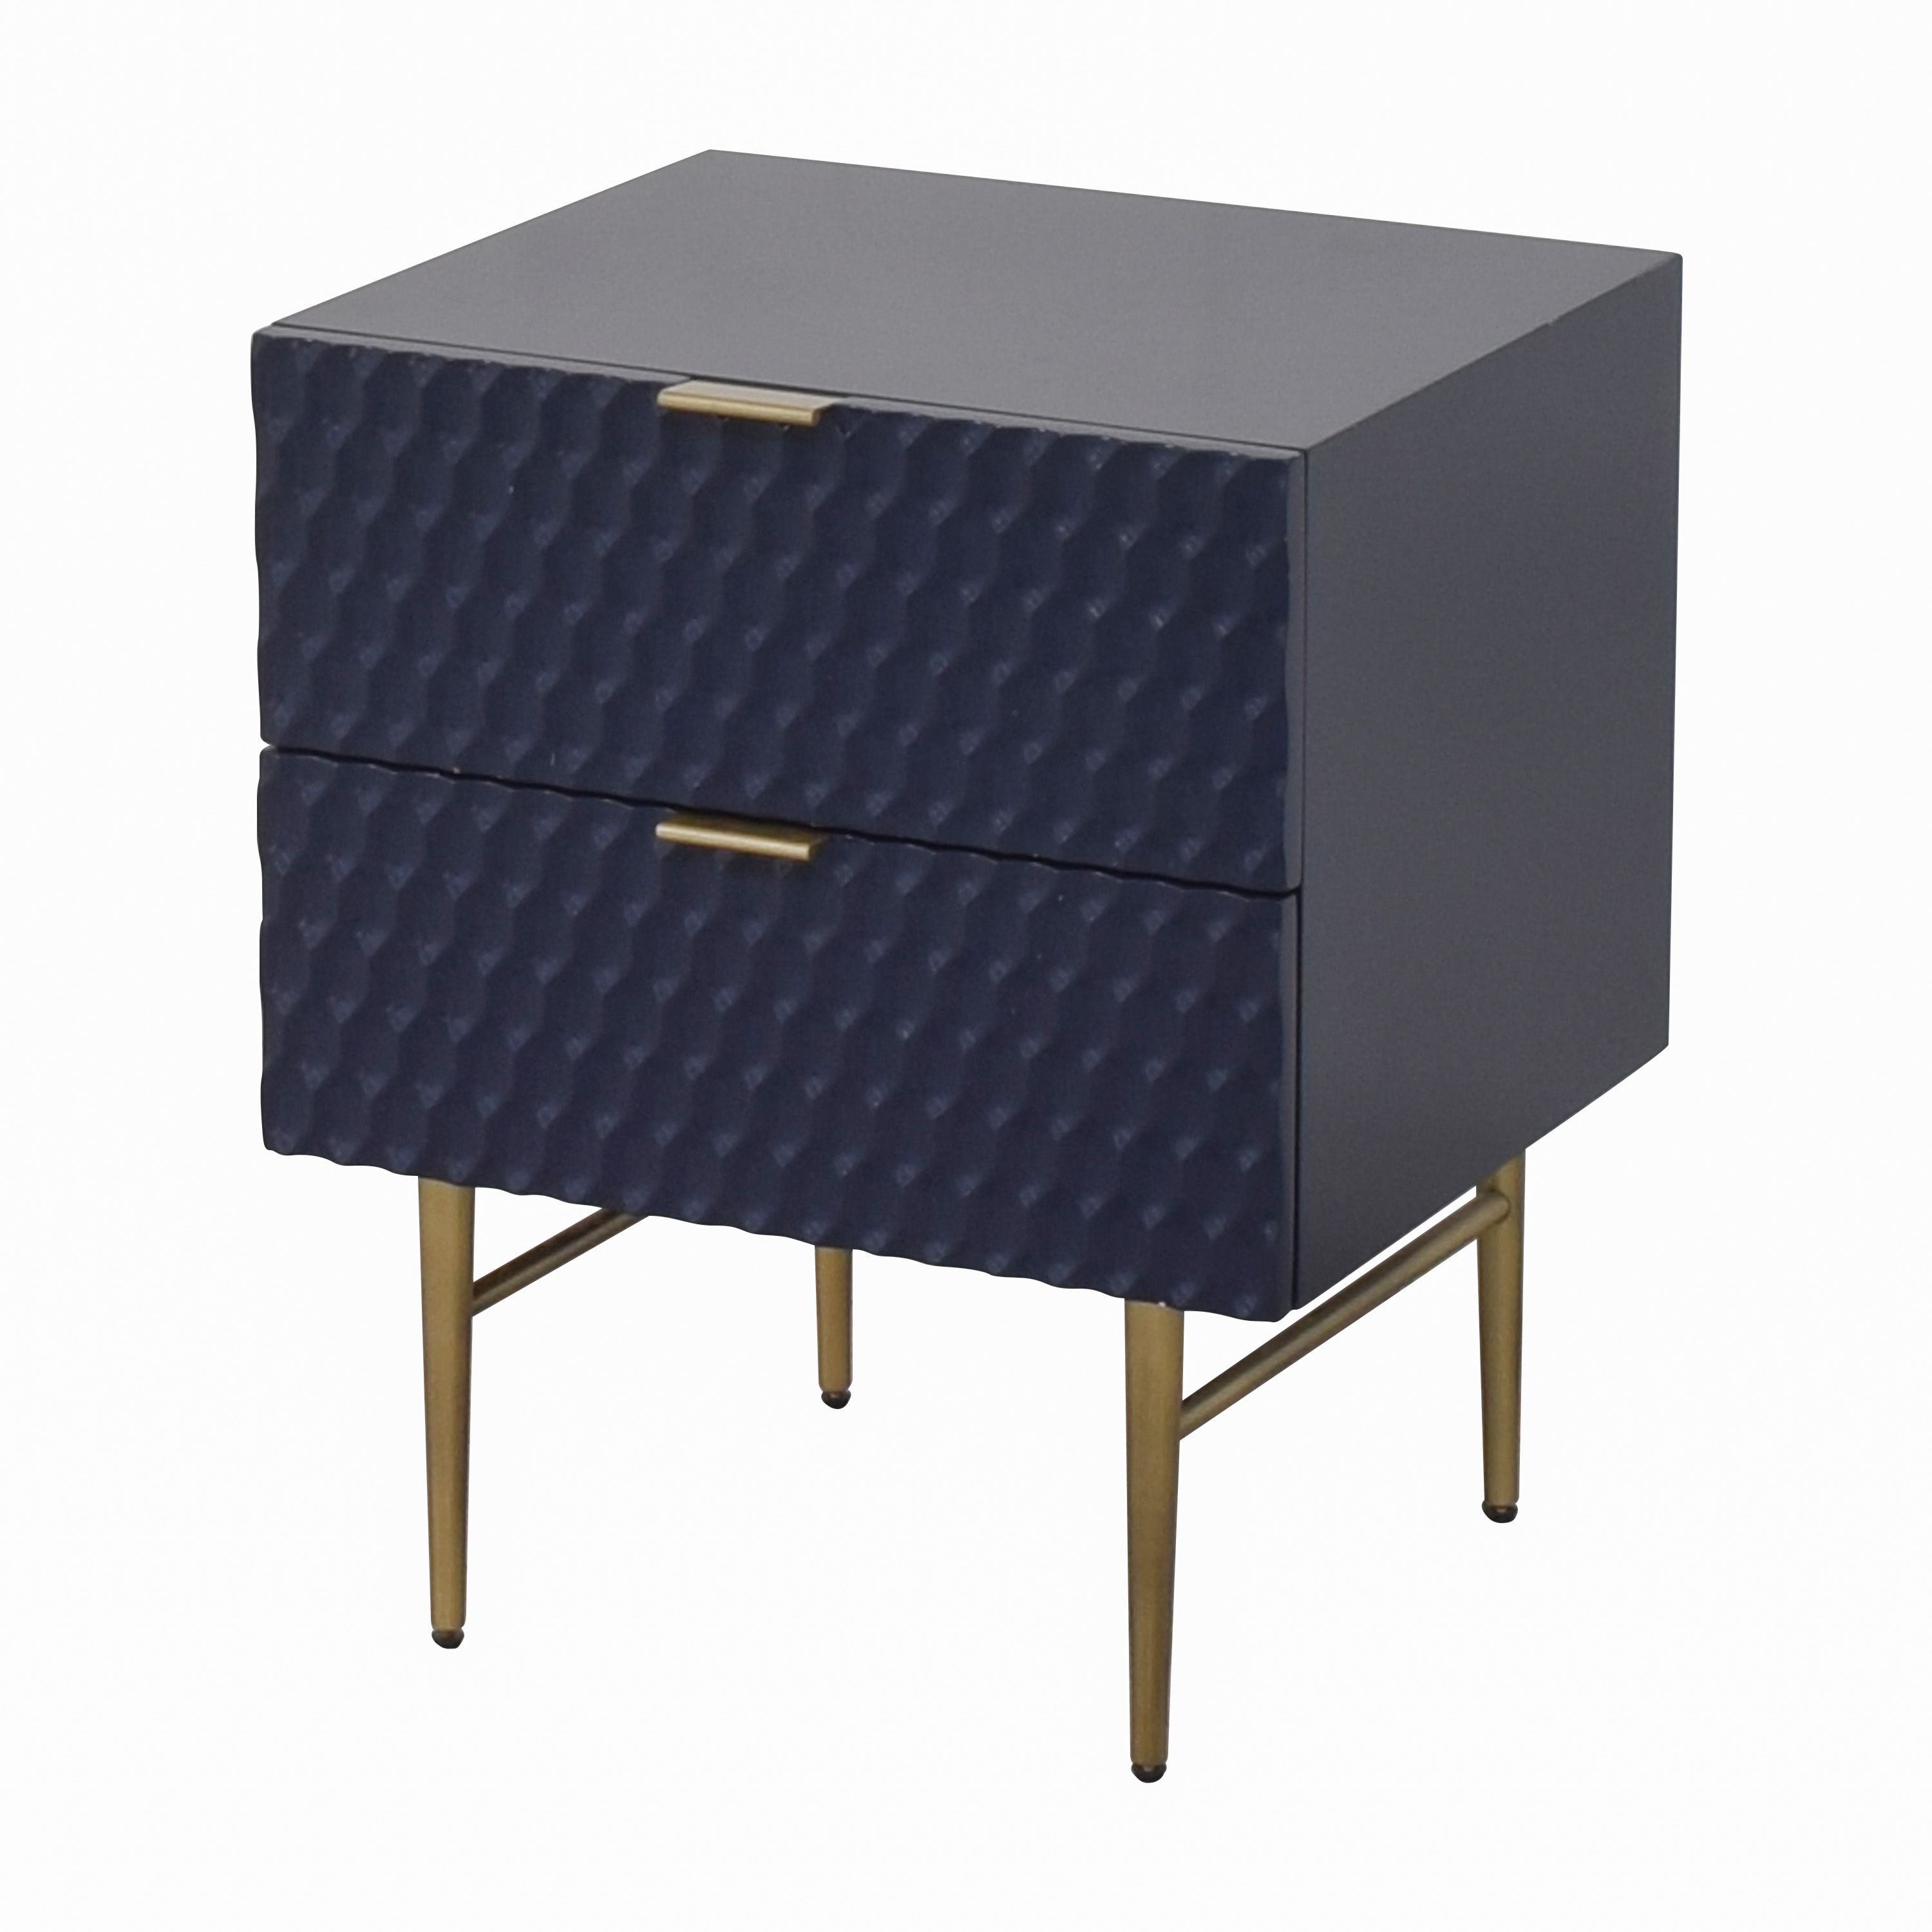 West Elm West Elm Audrey Nightstand nj